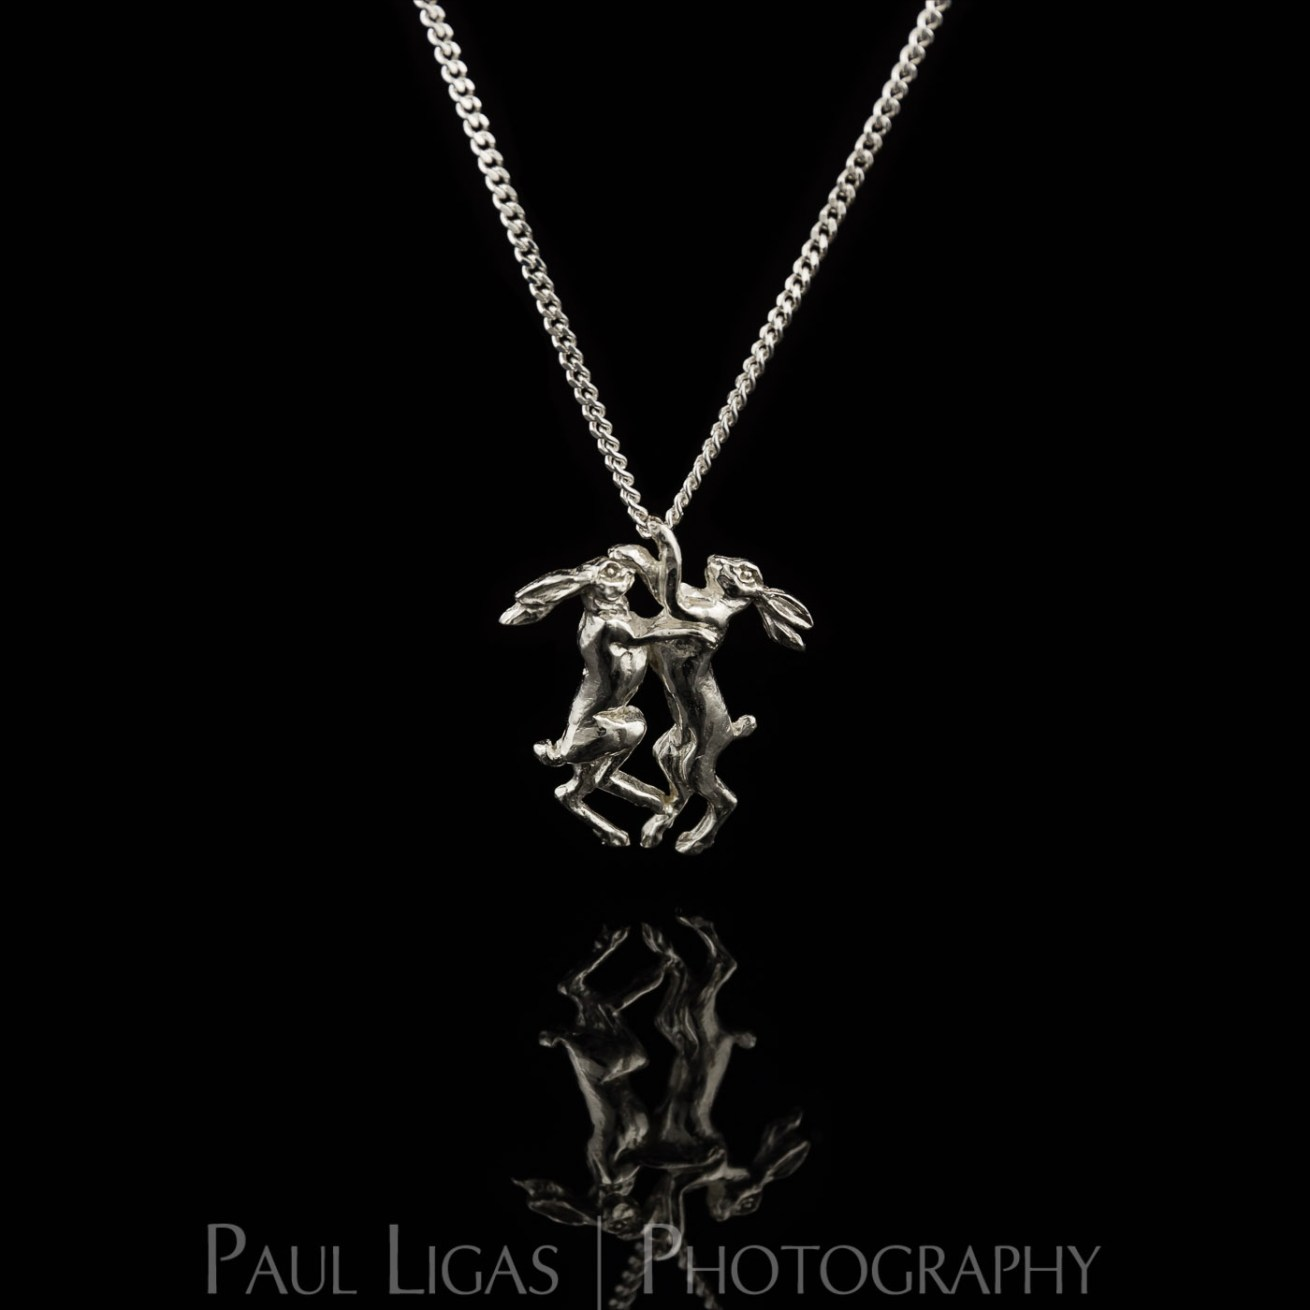 JB Gaynan & Son, Ledbury, Herefordshire jewellery product photographer photography 1767